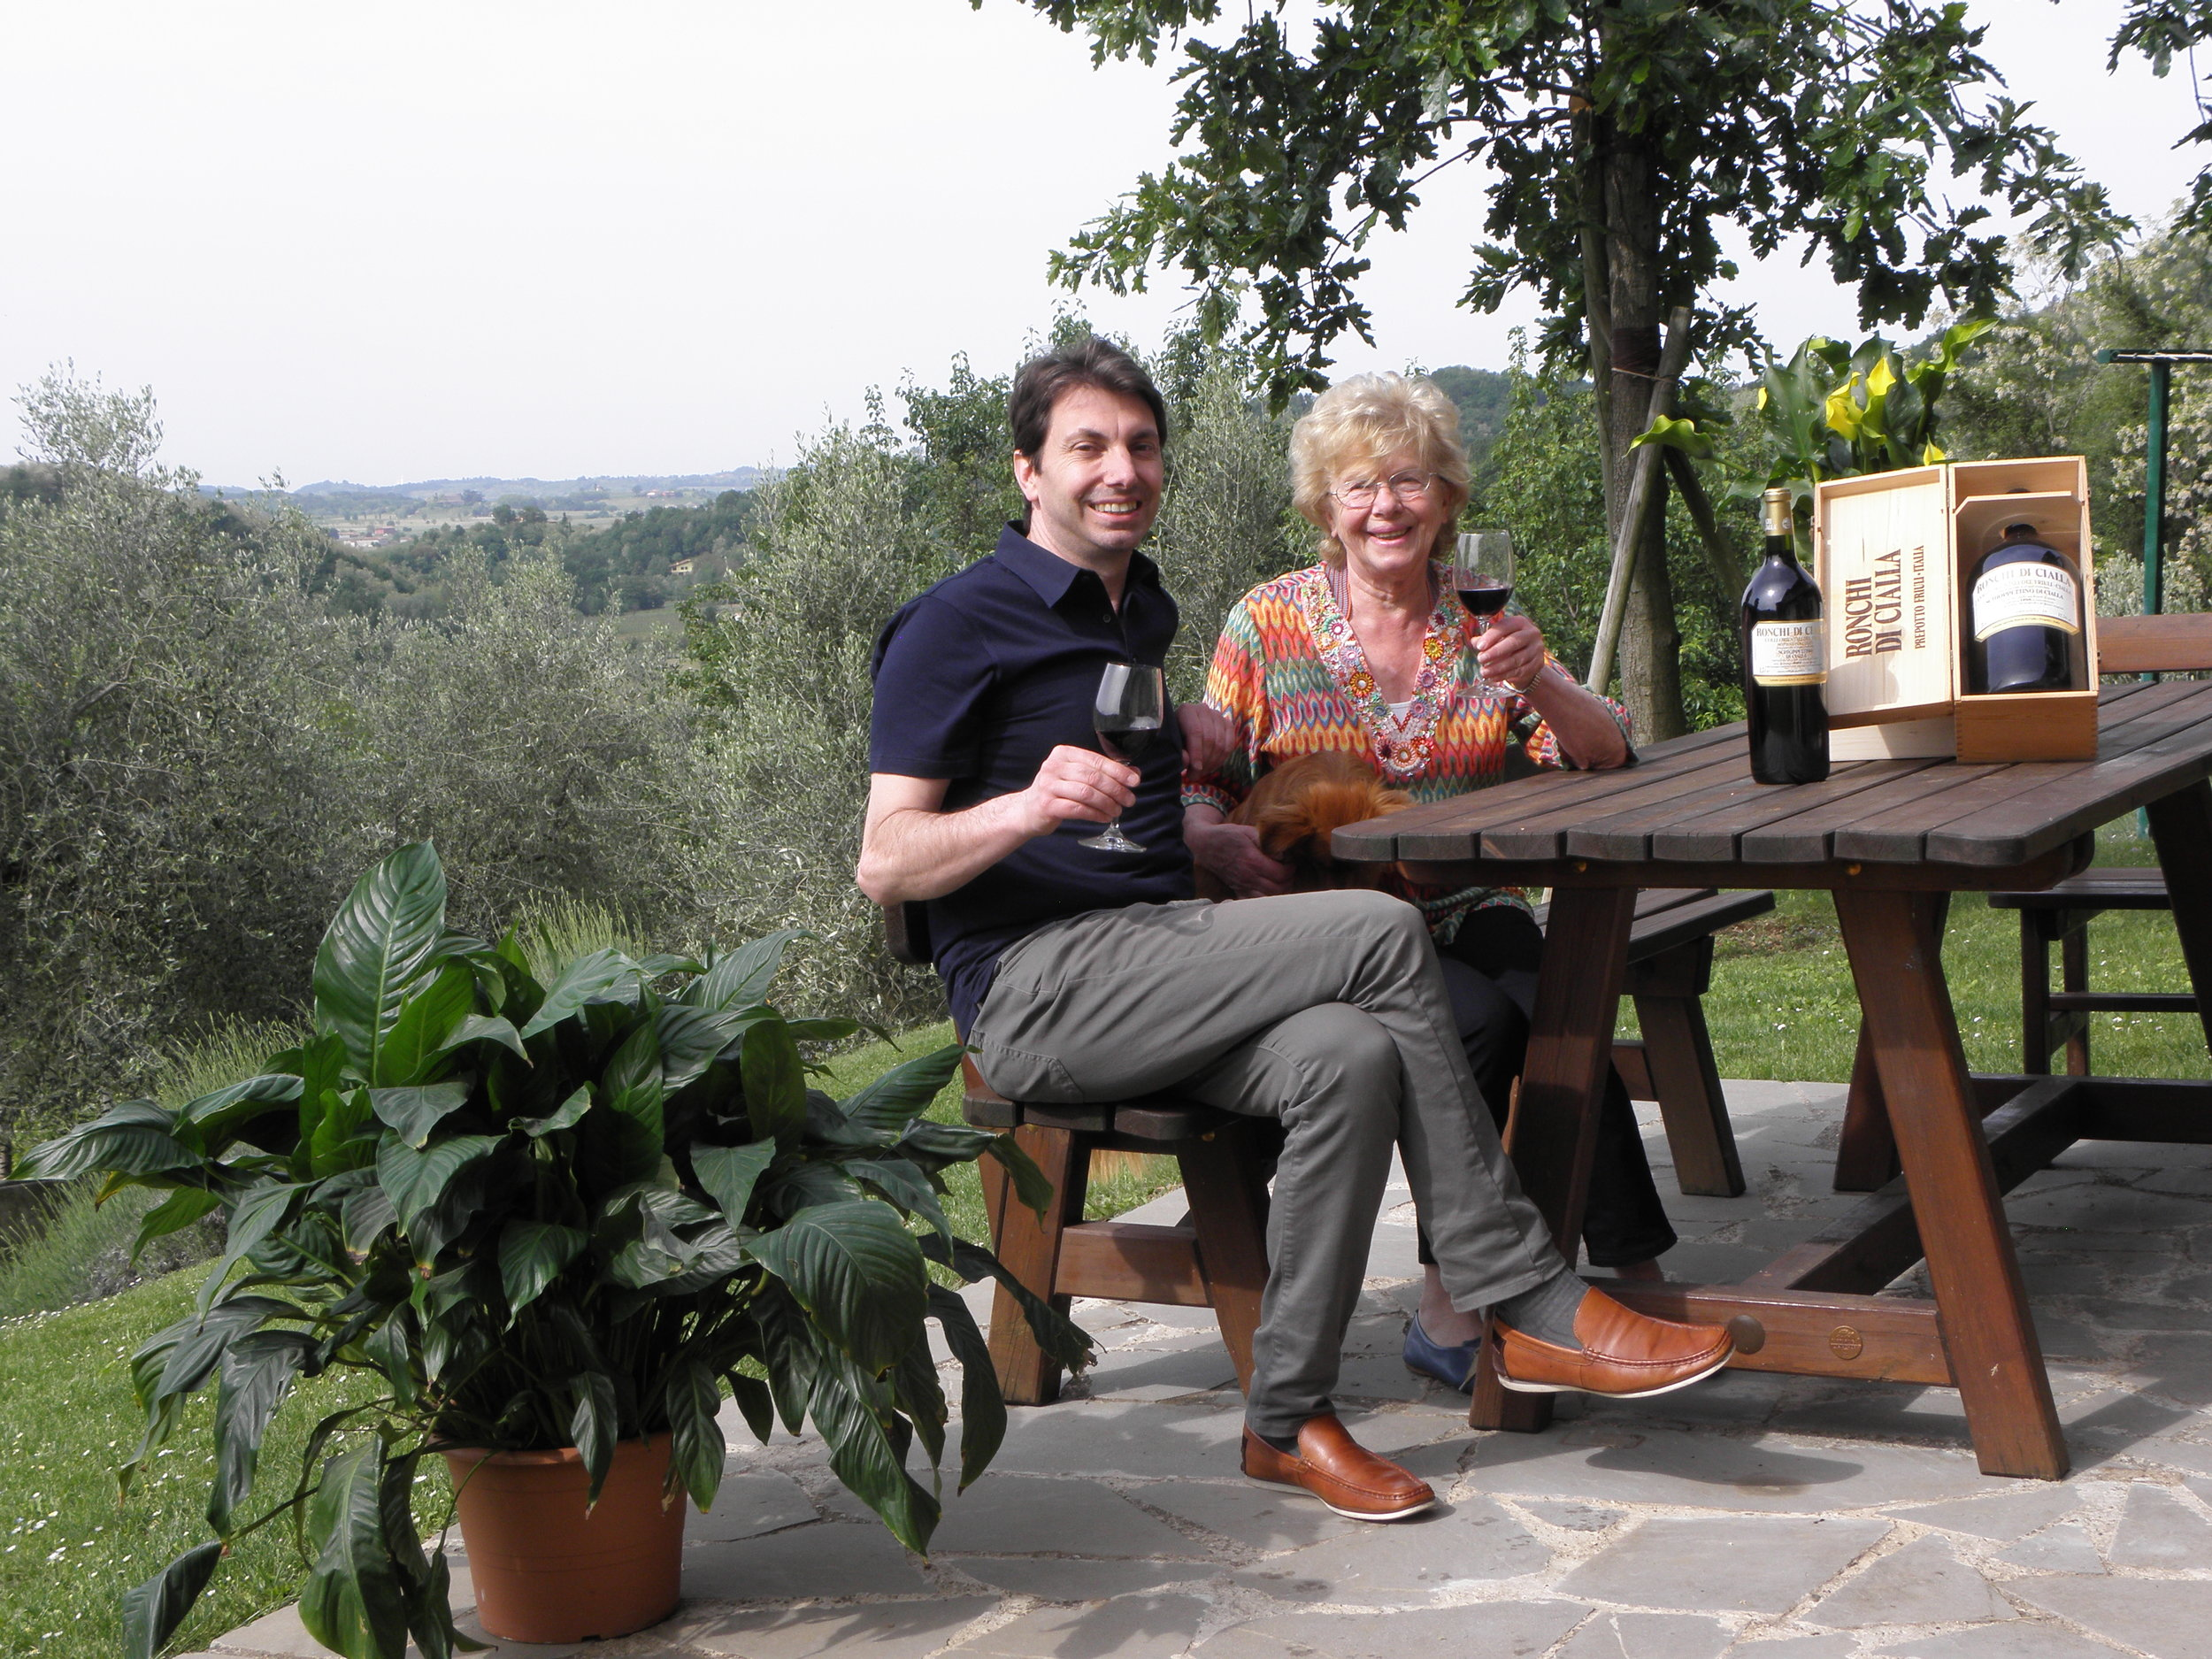 "The Ronchi di Cialla estate is strictly a family business.  While Dina and Paolo Rapuzzi, who founded it in 1970, were attracted by wine growing as a way of living, their children Pierpaolo and Ivan belong to a generation that ""grew up with vines"".  Both of them have, in fact, a degree in Food Sciences and are agrarian experts; they firmly support the Ronchi di Cialla policy and immemorial wine making tradition in Friuli.  This family has thus become an uncommon heir of ancient traditions on one hand and modern scientific knowledge on the other making this small family business out of the ordinary."